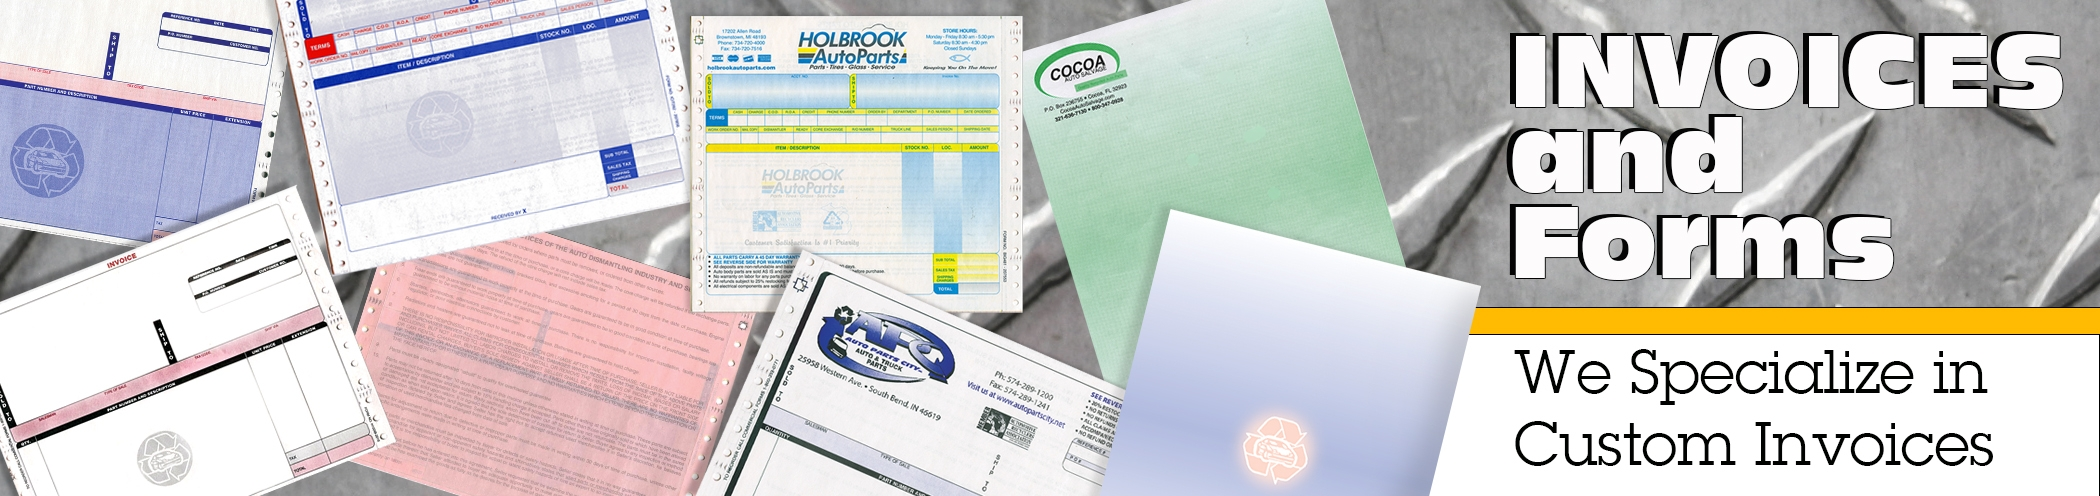 Invoices & Forms